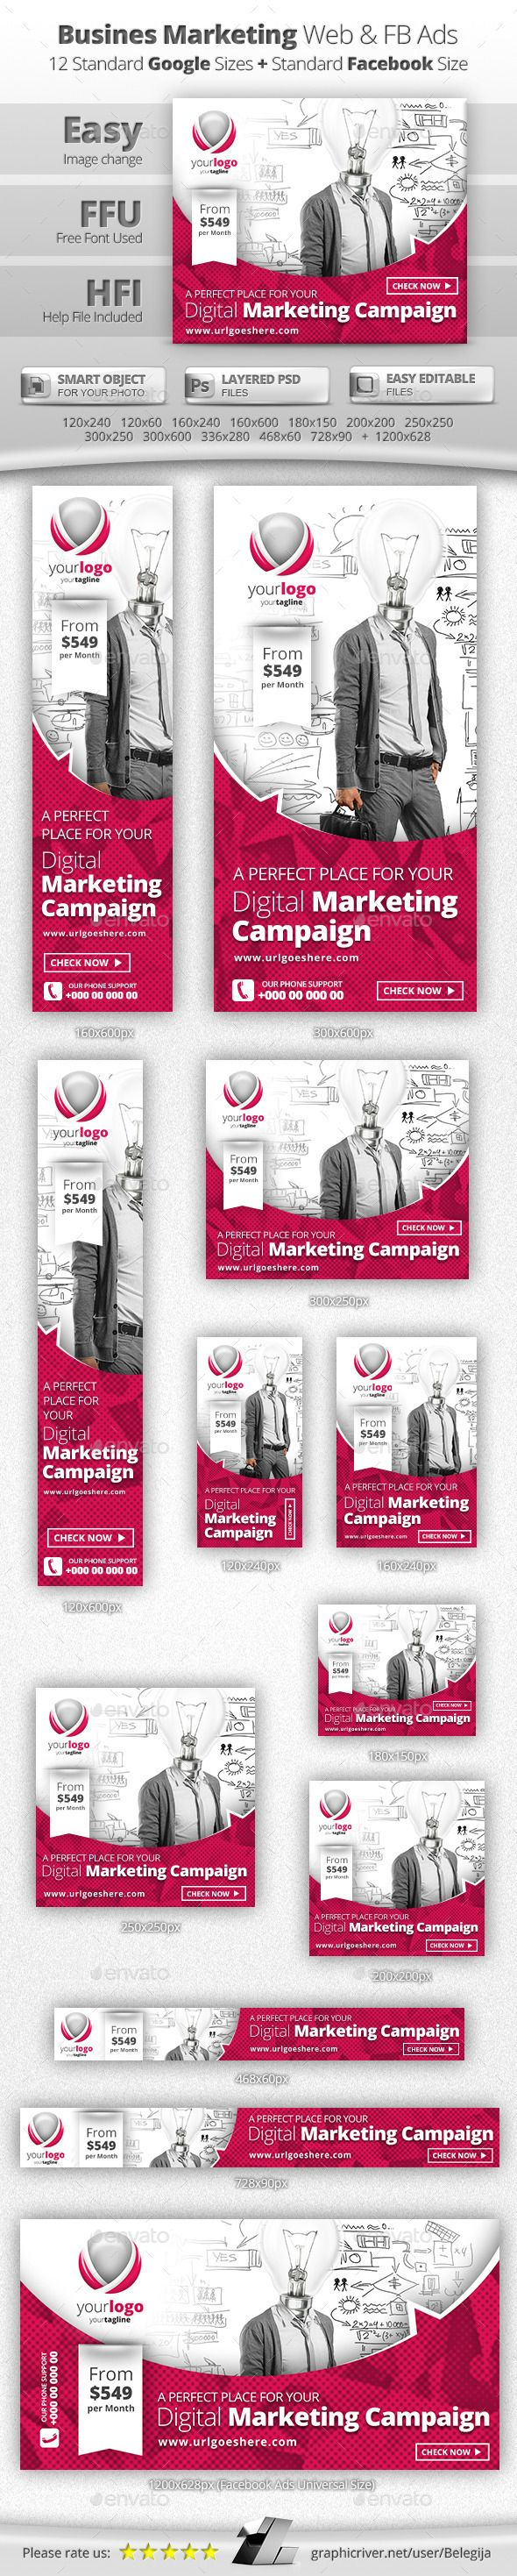 Business Marketing Campaign Web & Facebook Banners Tempalte #design Download: http://graphicriver.net/item/business-marketing-campaign-web-facebook-banners/11453765?ref=ksioks